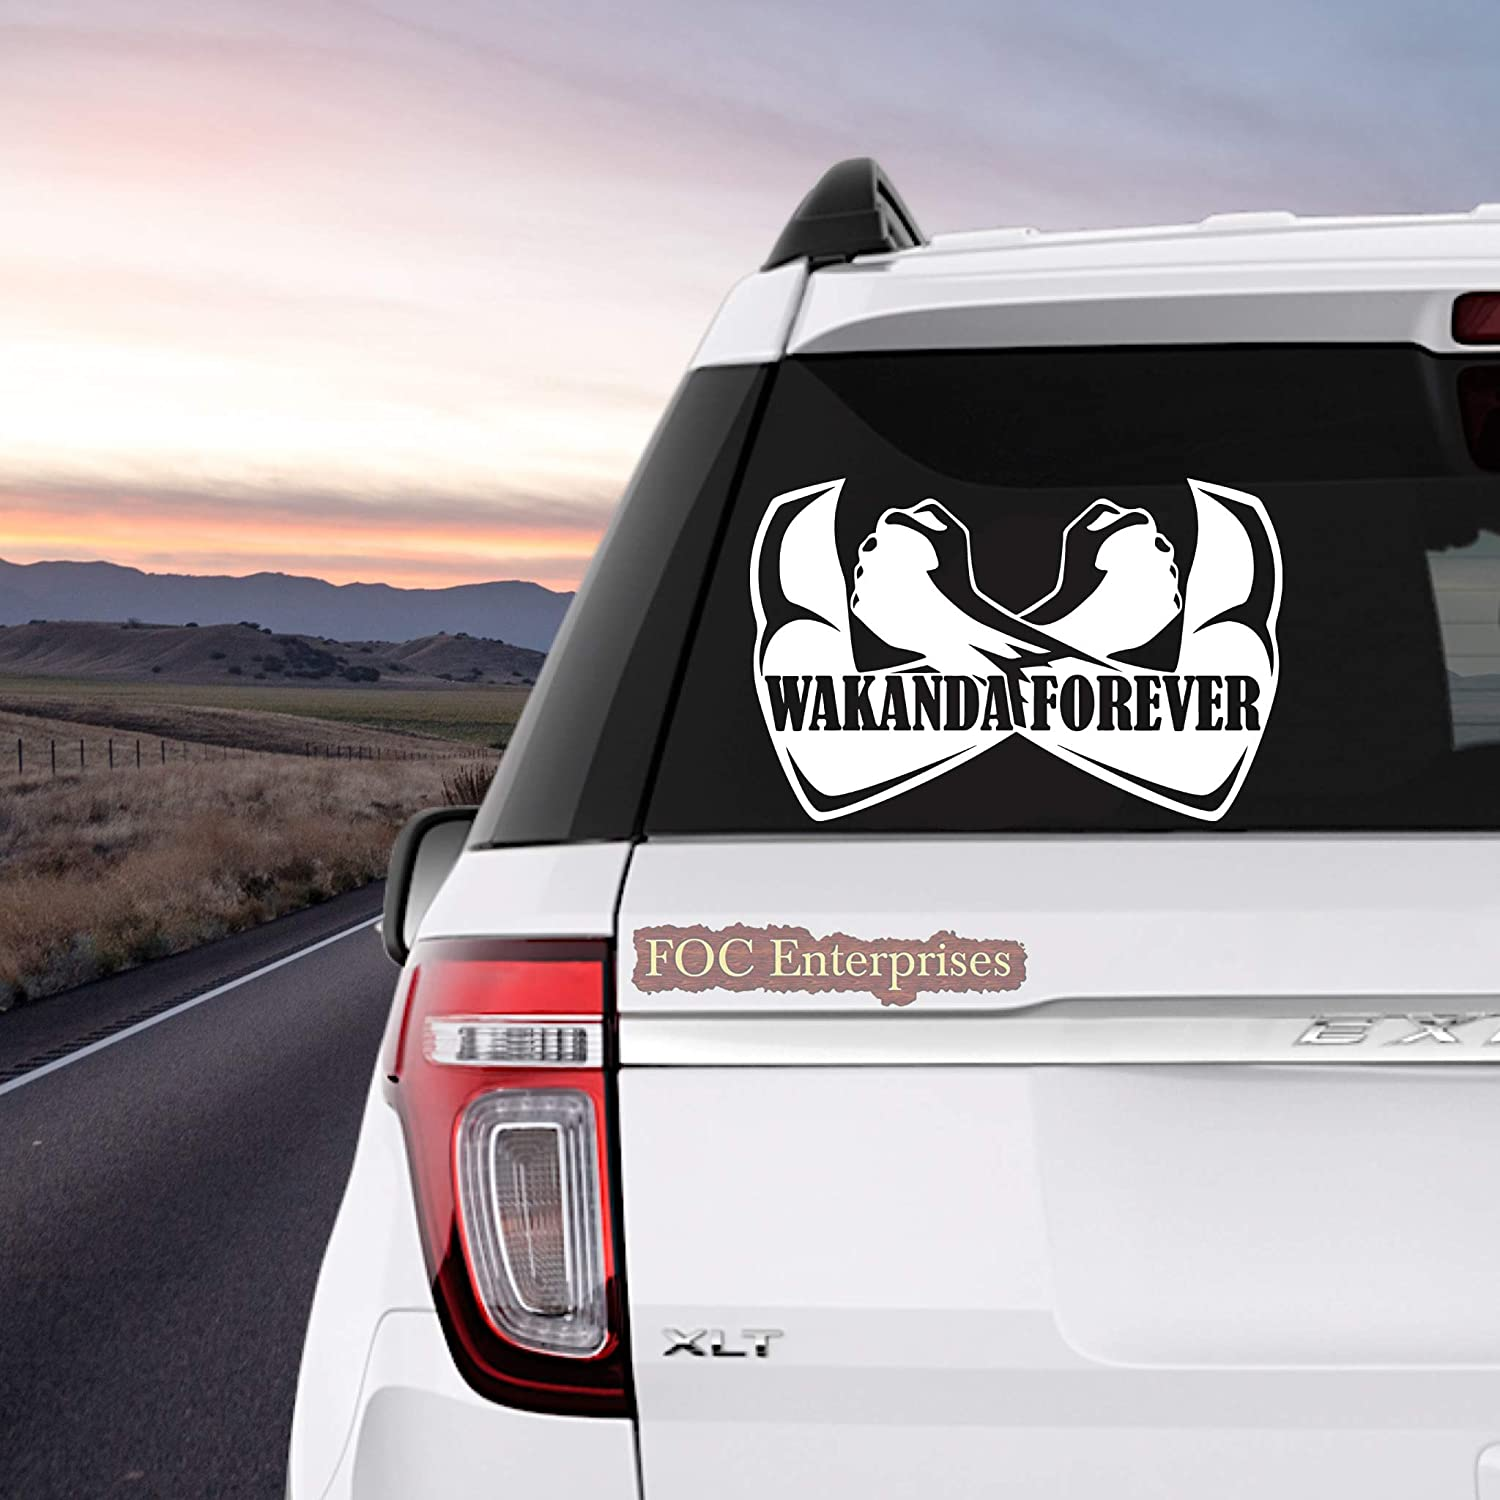 "Wakanda Forever Black Panther Decal Vinyl Sticker for MacBook Laptop Car Truck Window Bumper - Size Approx. 6.5"" inches Longer Side, White"